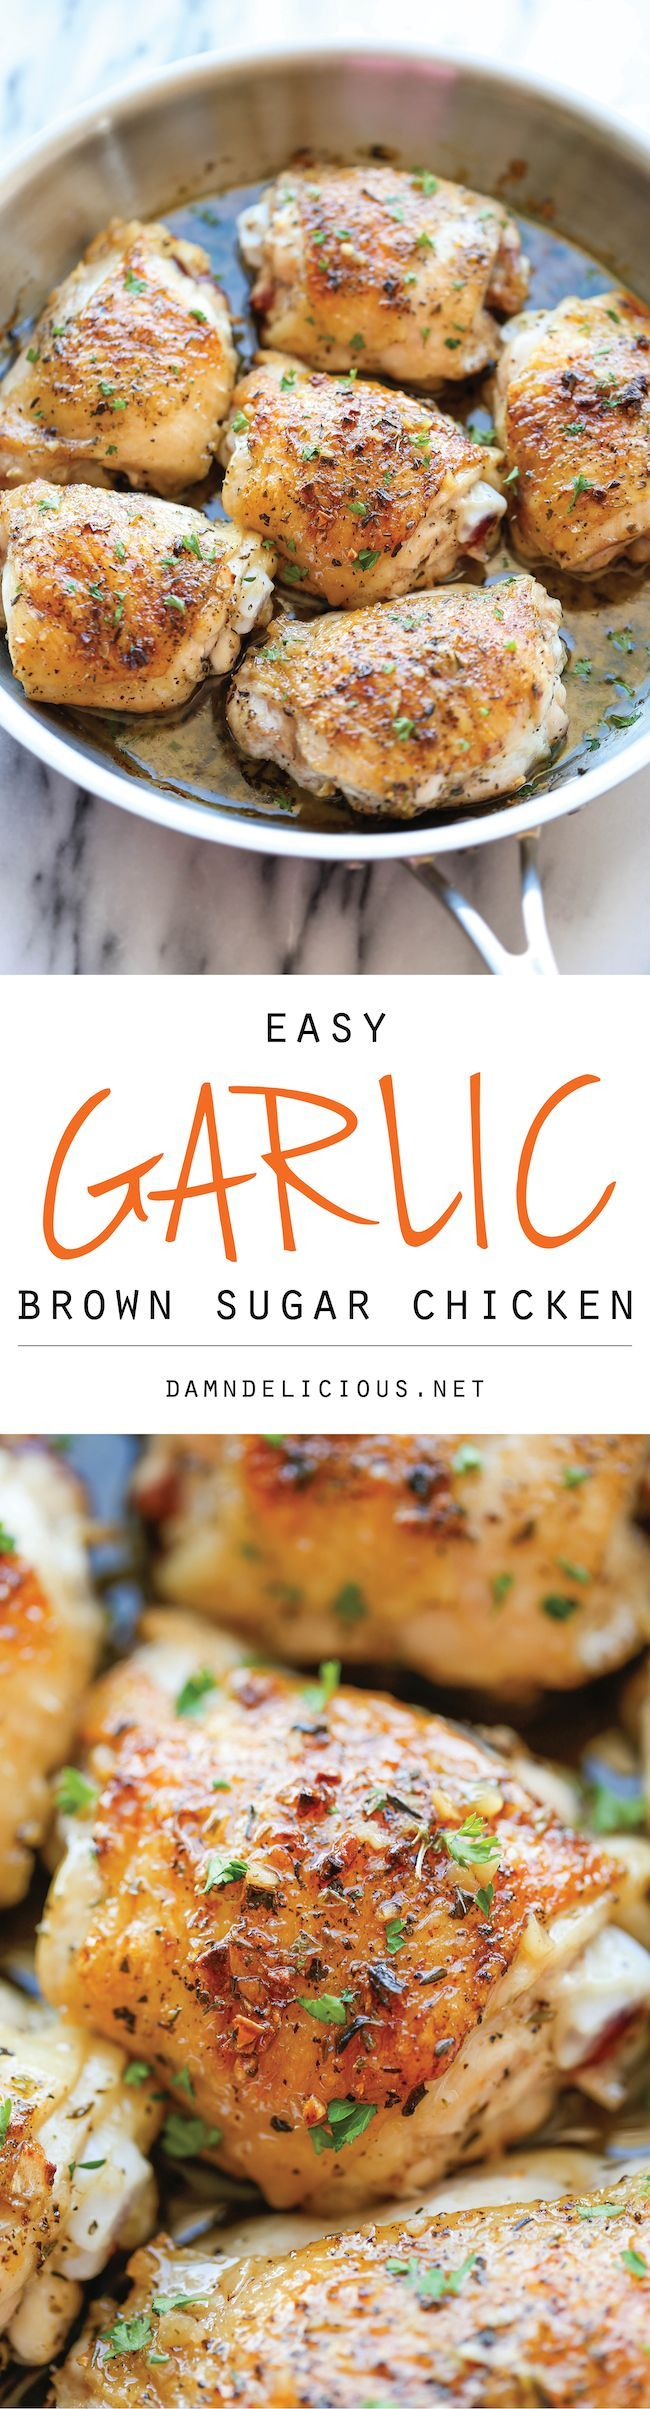 chicken perfection and ever  crisp tender best with to the Sugar Brown shoes Garlic sauce  The sweet garlic most along easiest official   Chicken amazing baked